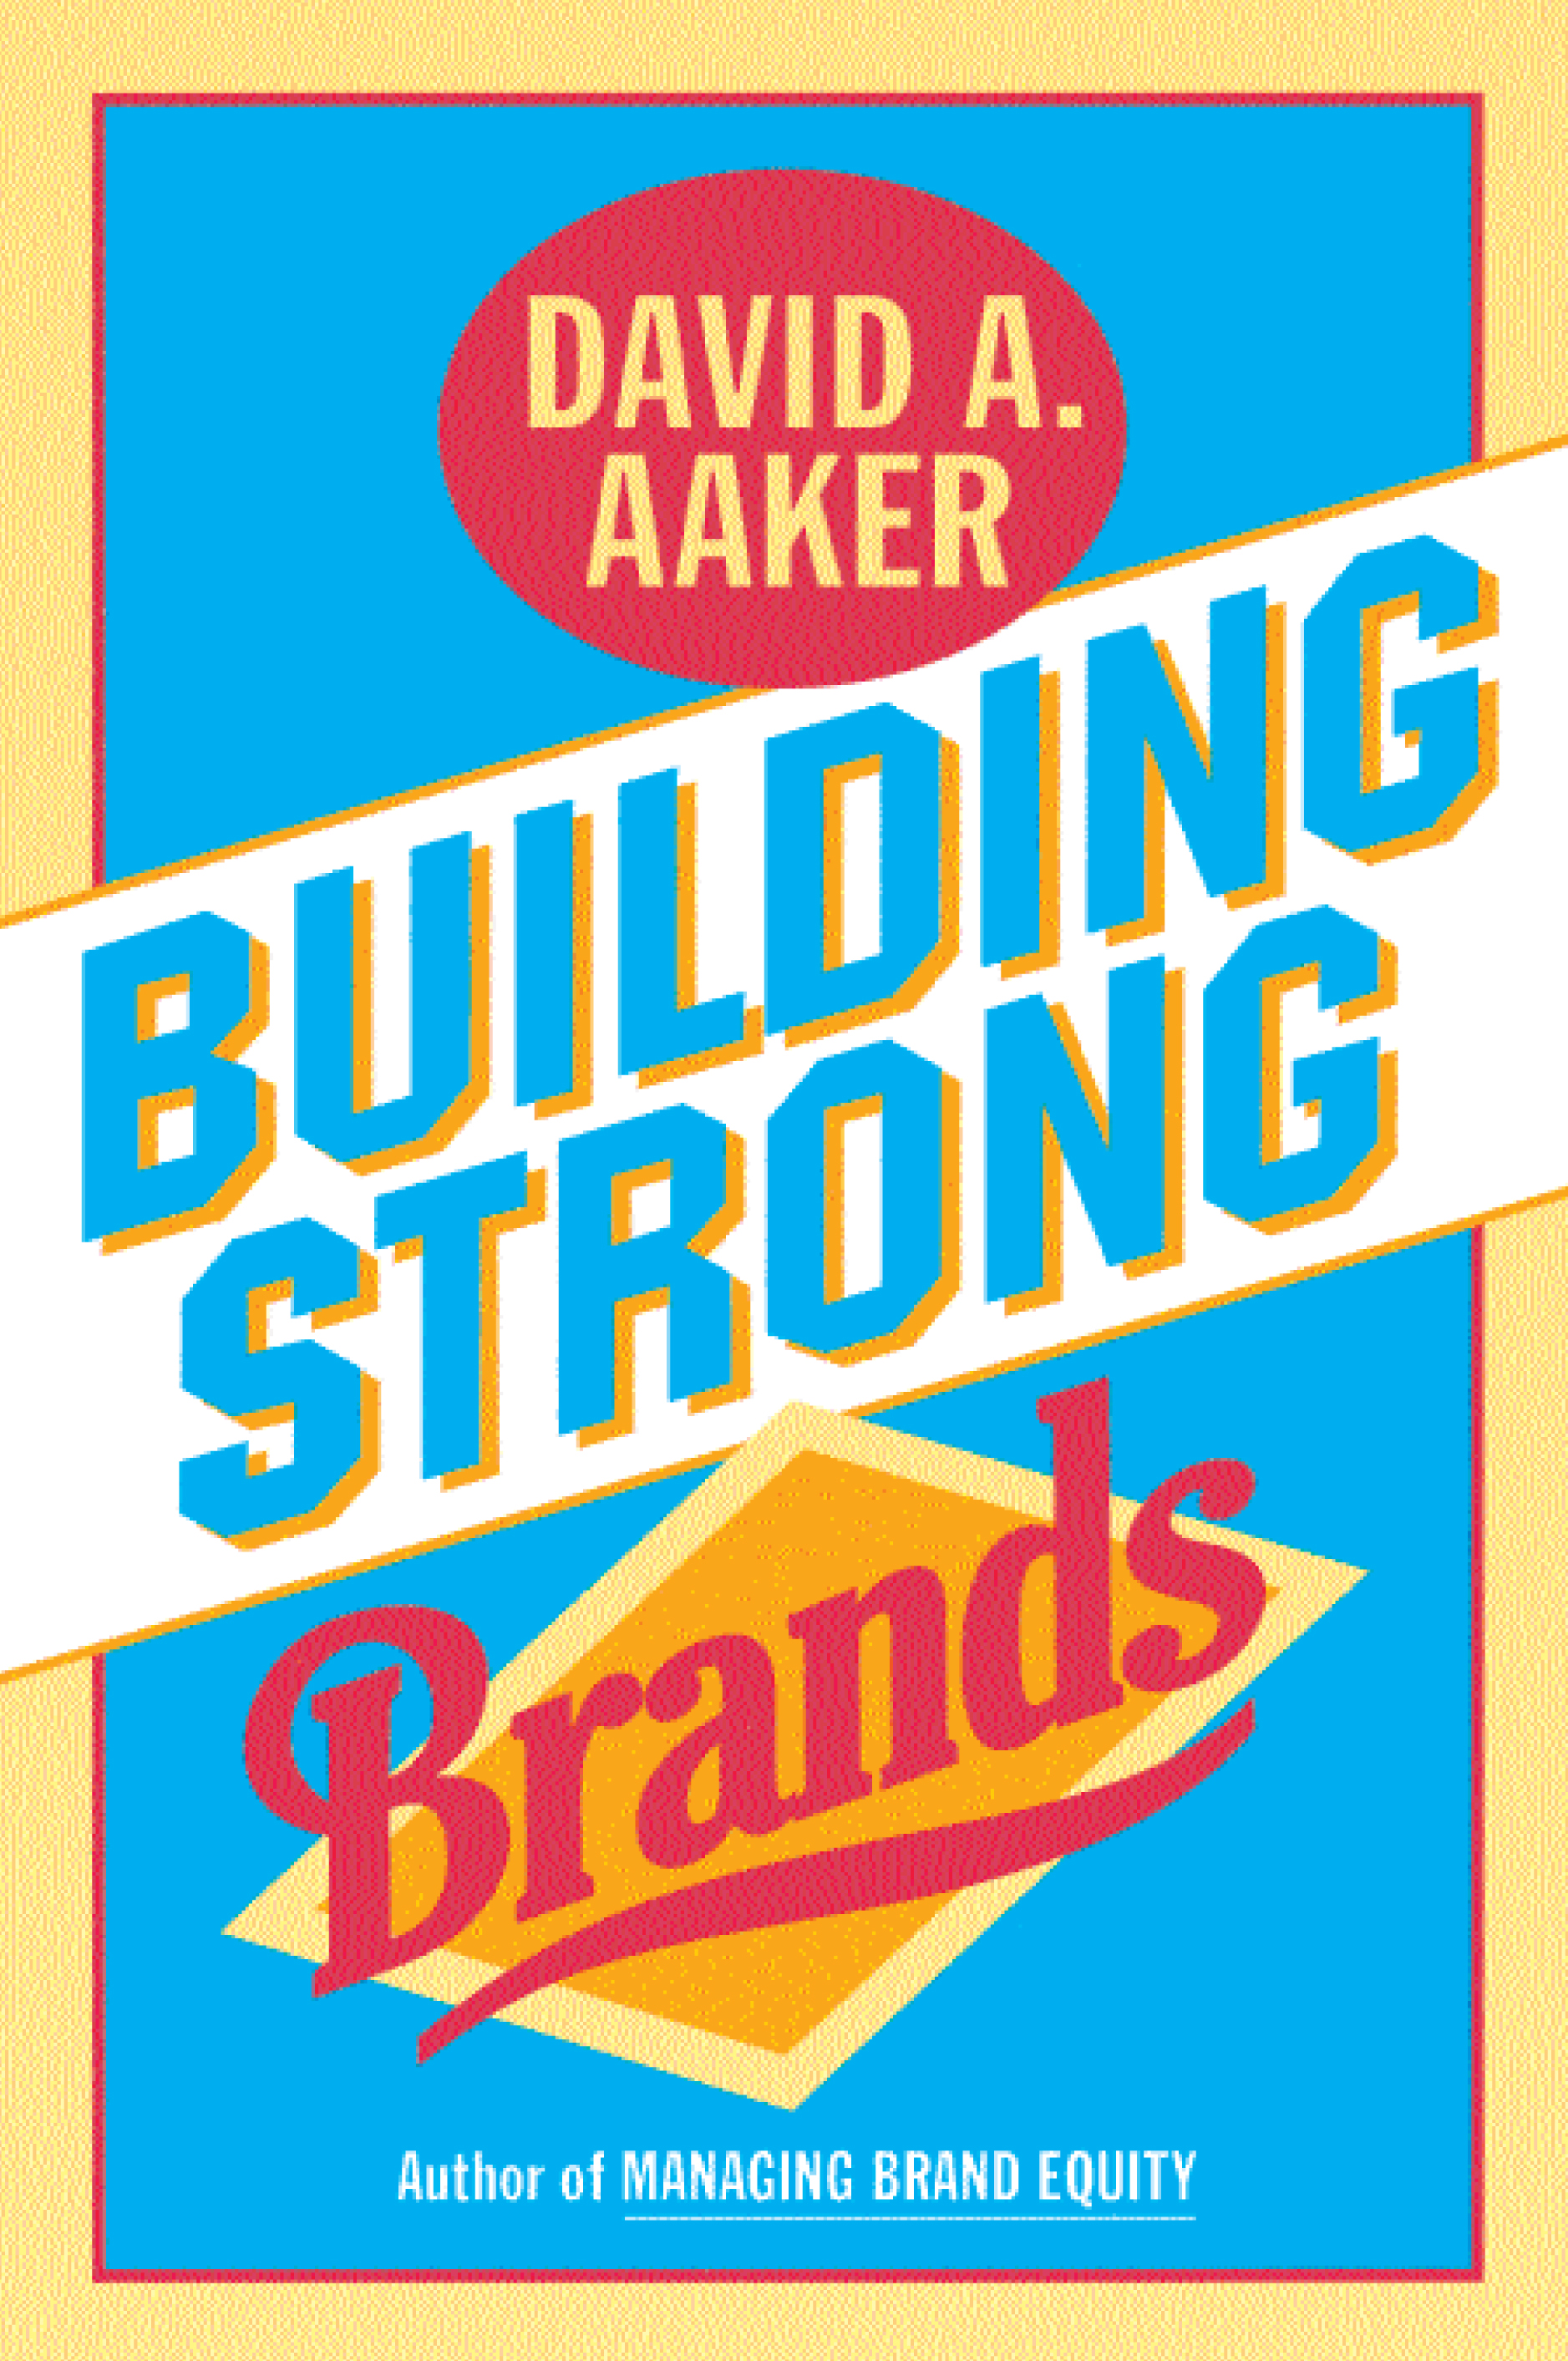 BRAND PORTFOLIO STRATEGY AAKER PDF DOWNLOAD